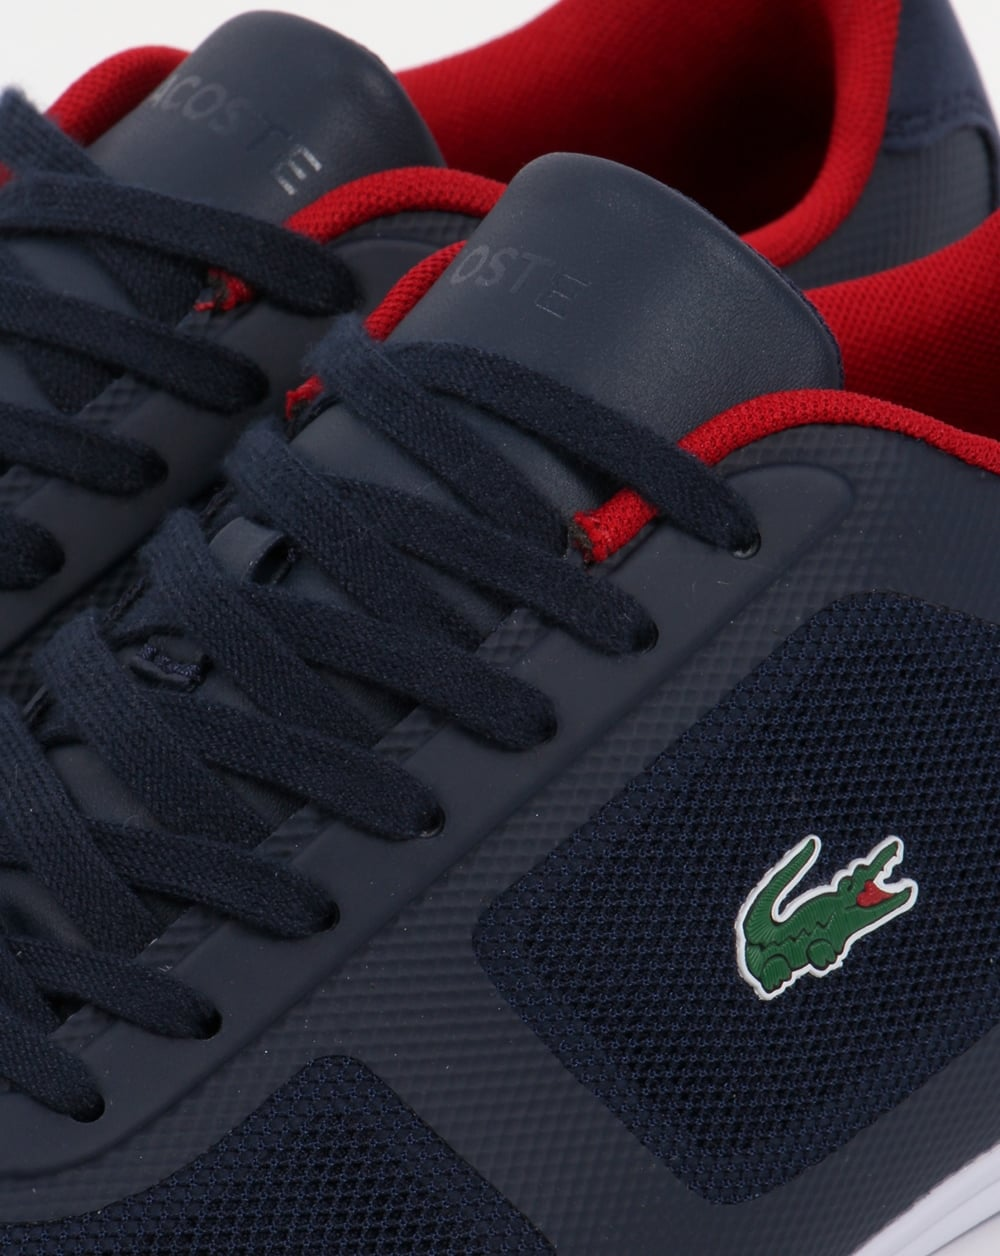 648f47b1d Lacoste Misano Evo Trainers Navy Red